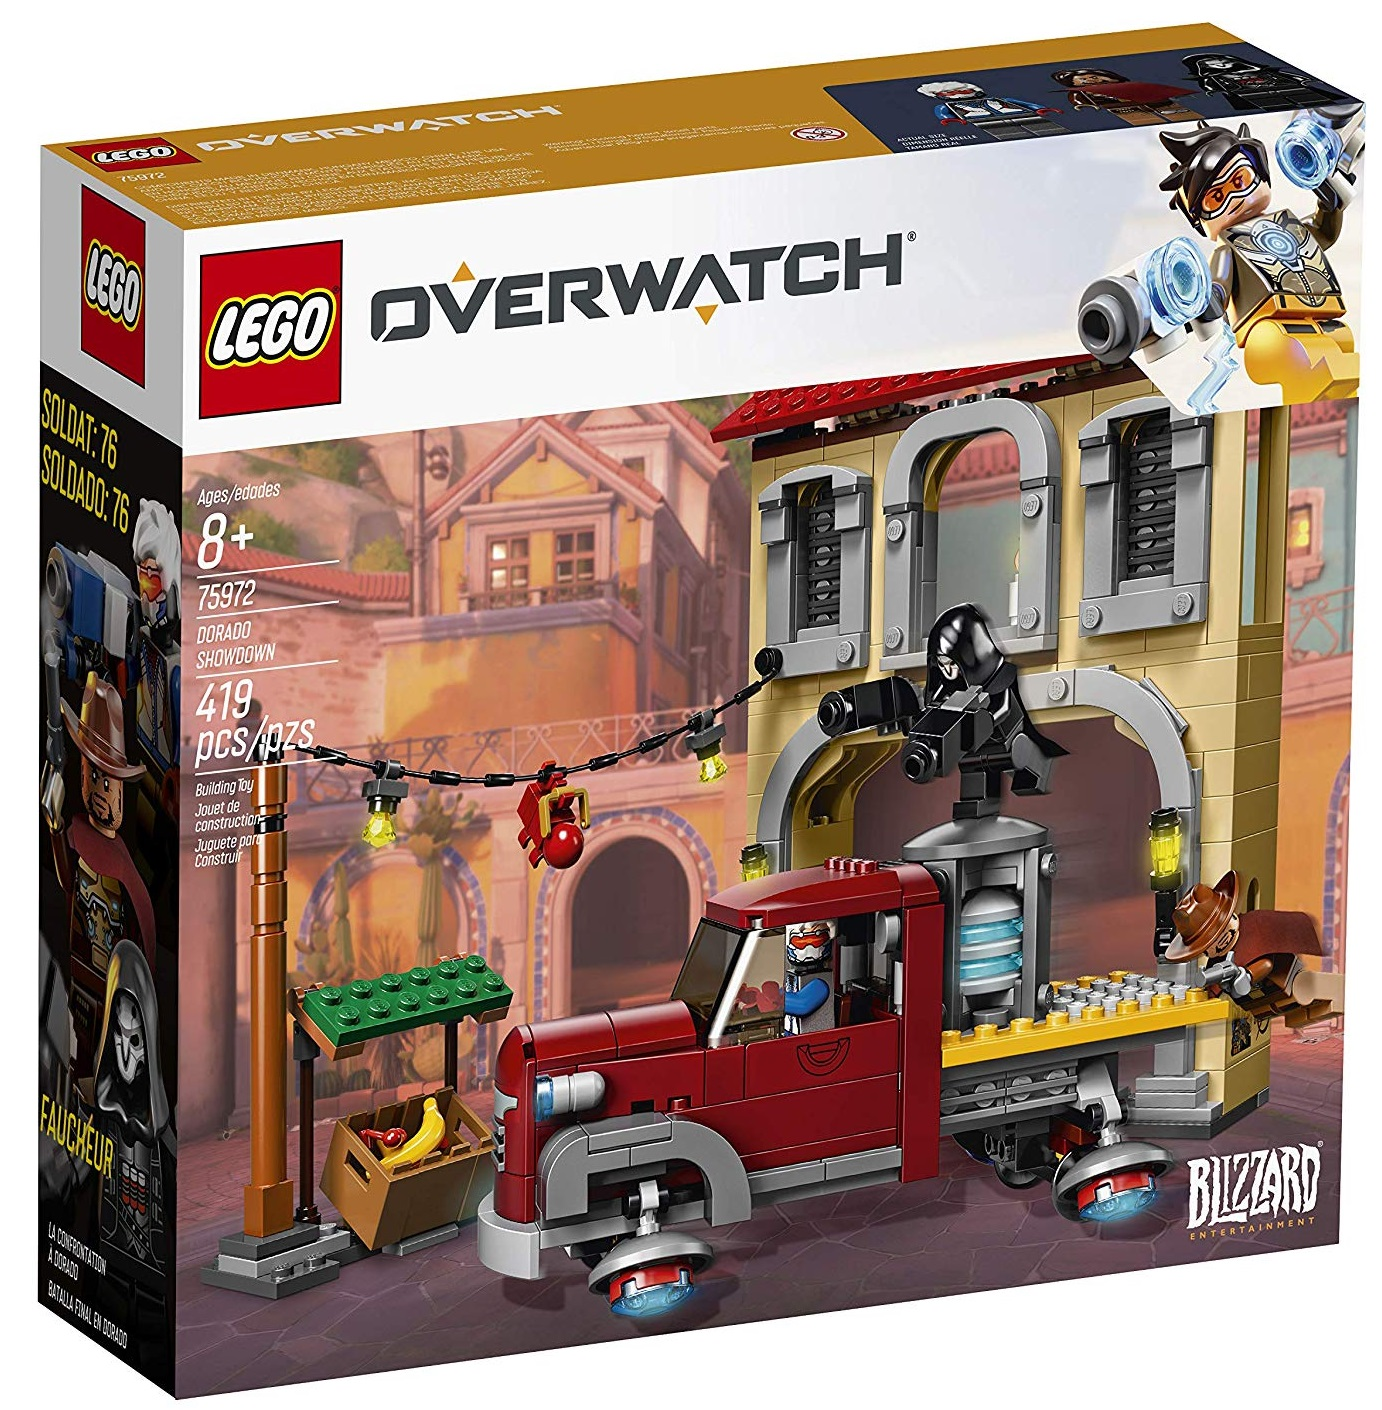 Set Lego de Overwatch: Batalla Final en Dorado